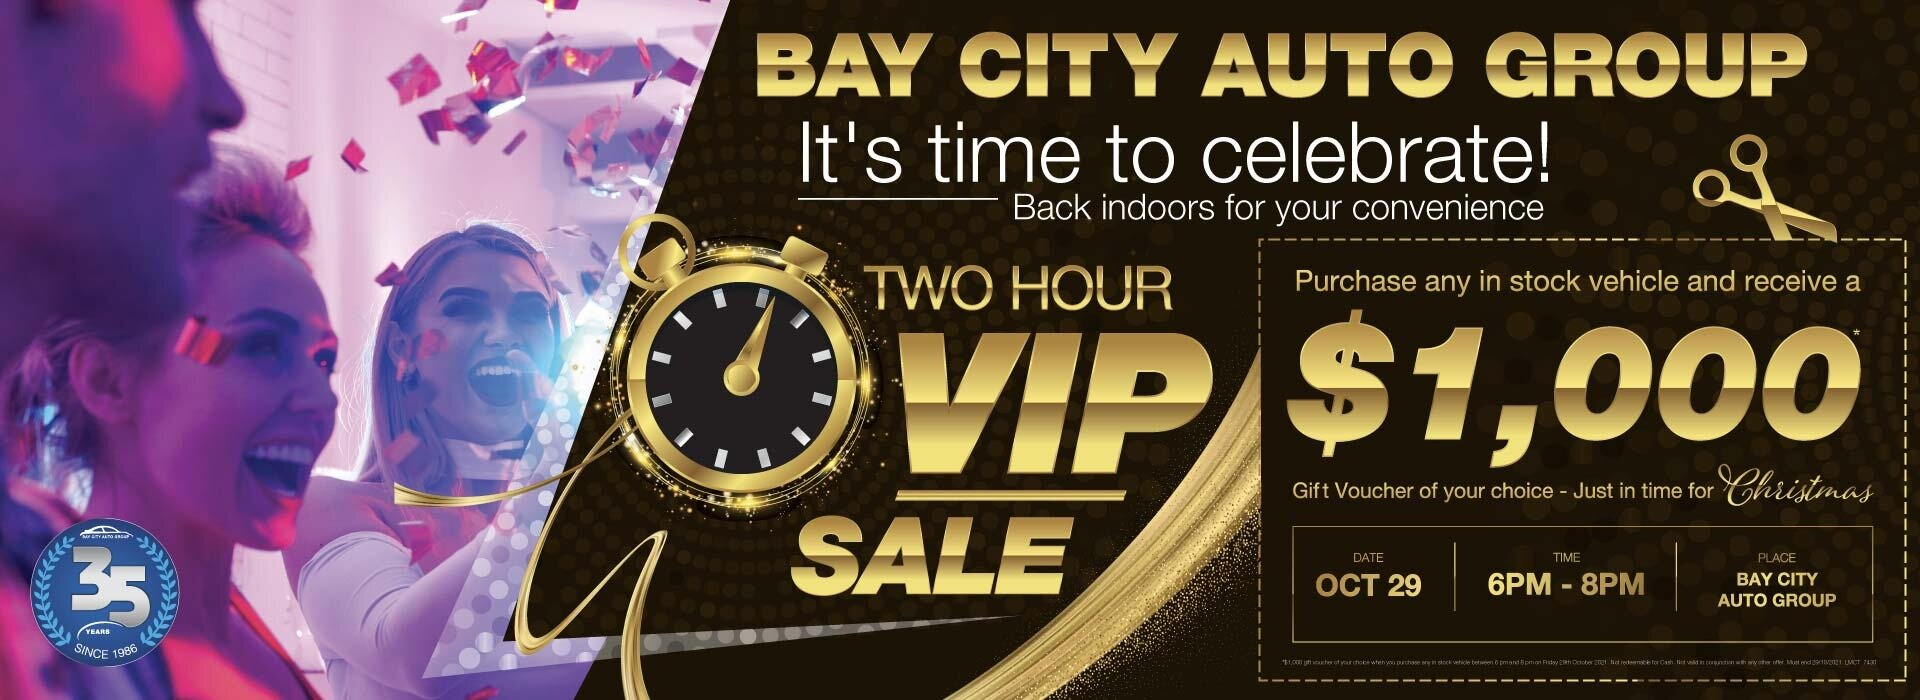 Bay City Auto Group - Two Hour VIP Sale